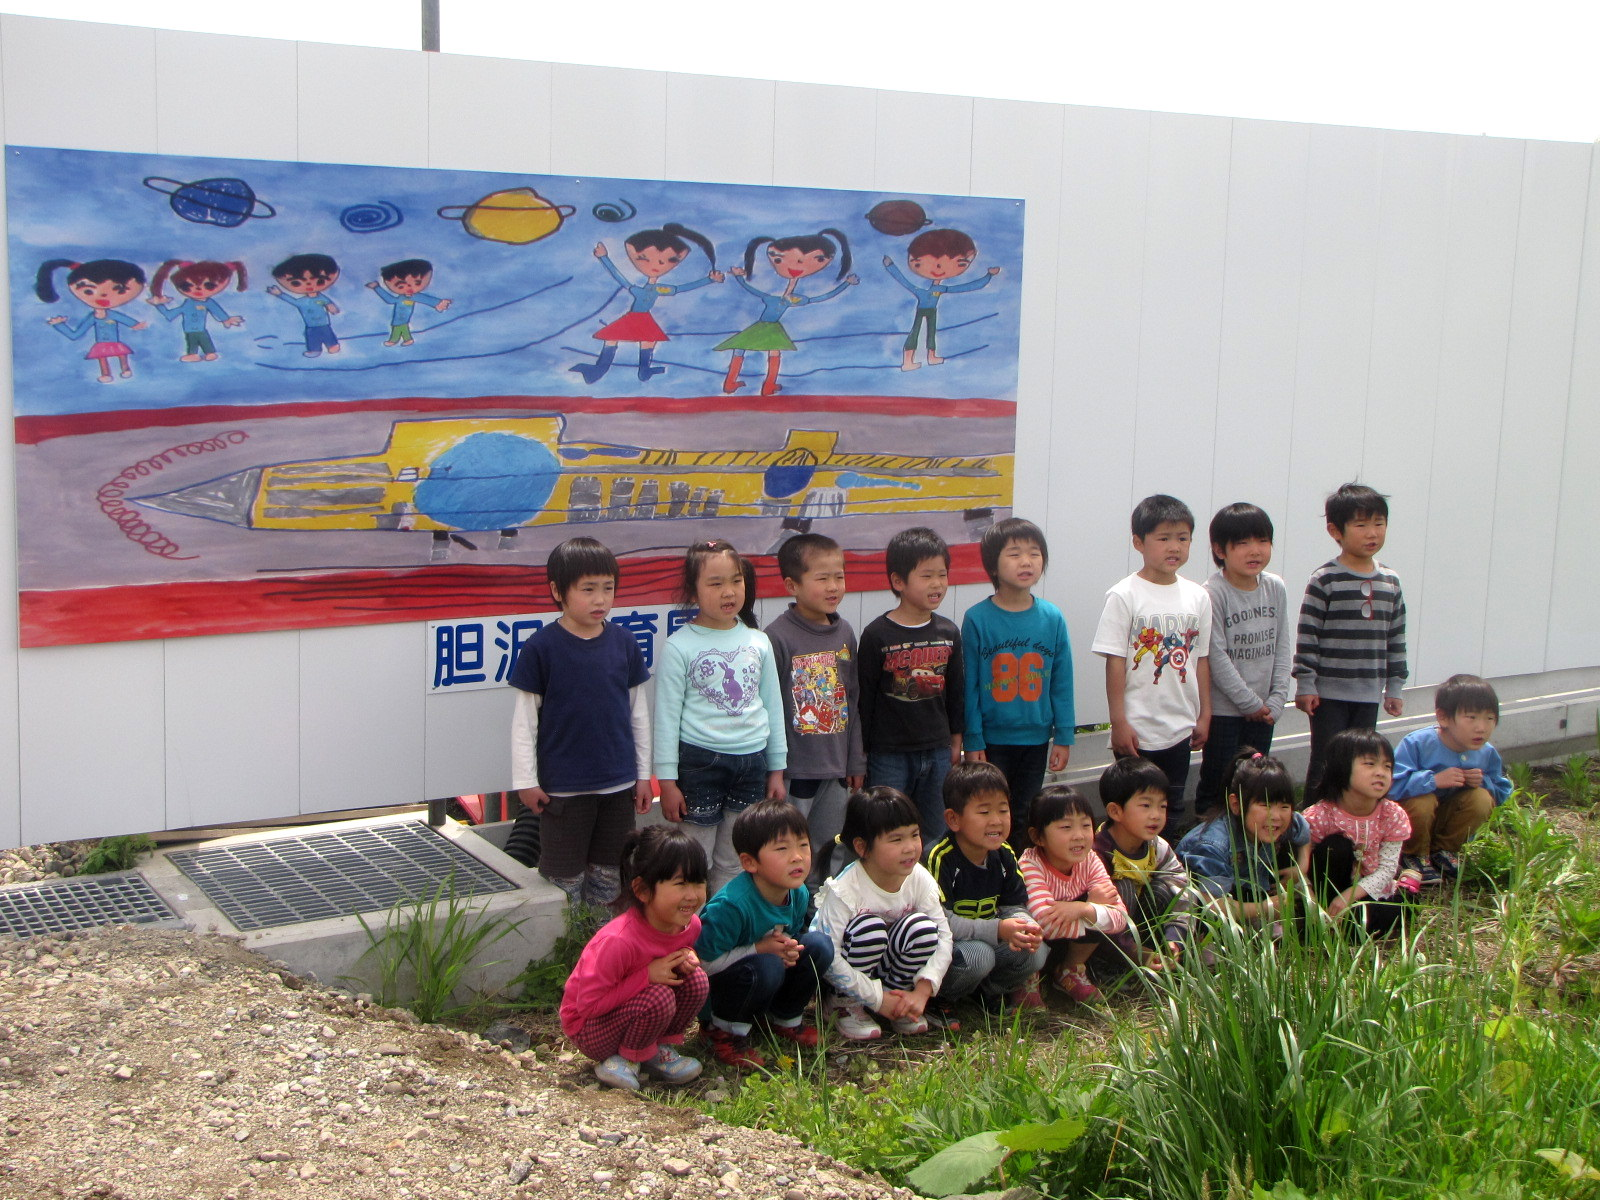 Students from Isawa Nursery School with their creation (how many future researchers are in the picture? So excited to find out!)